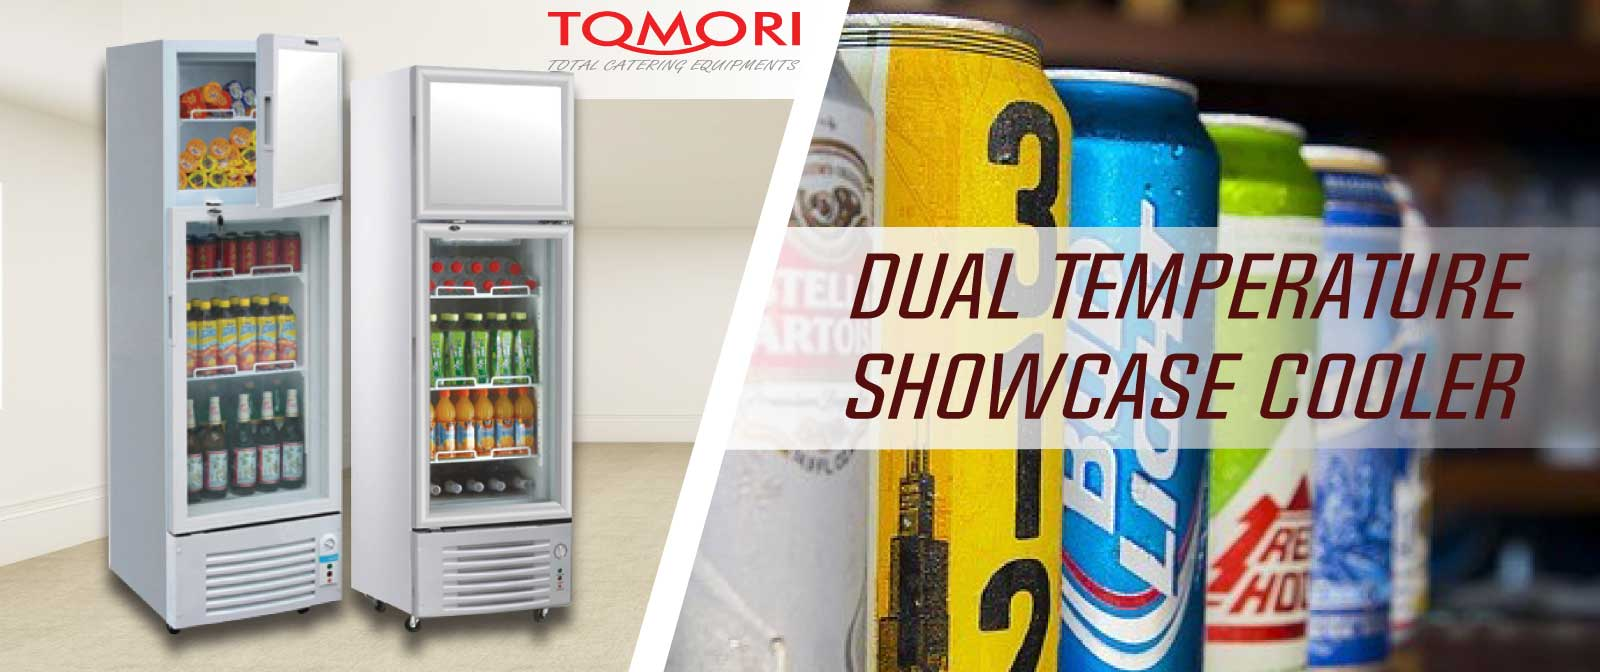 dual temperature showcase cooler indotara persada